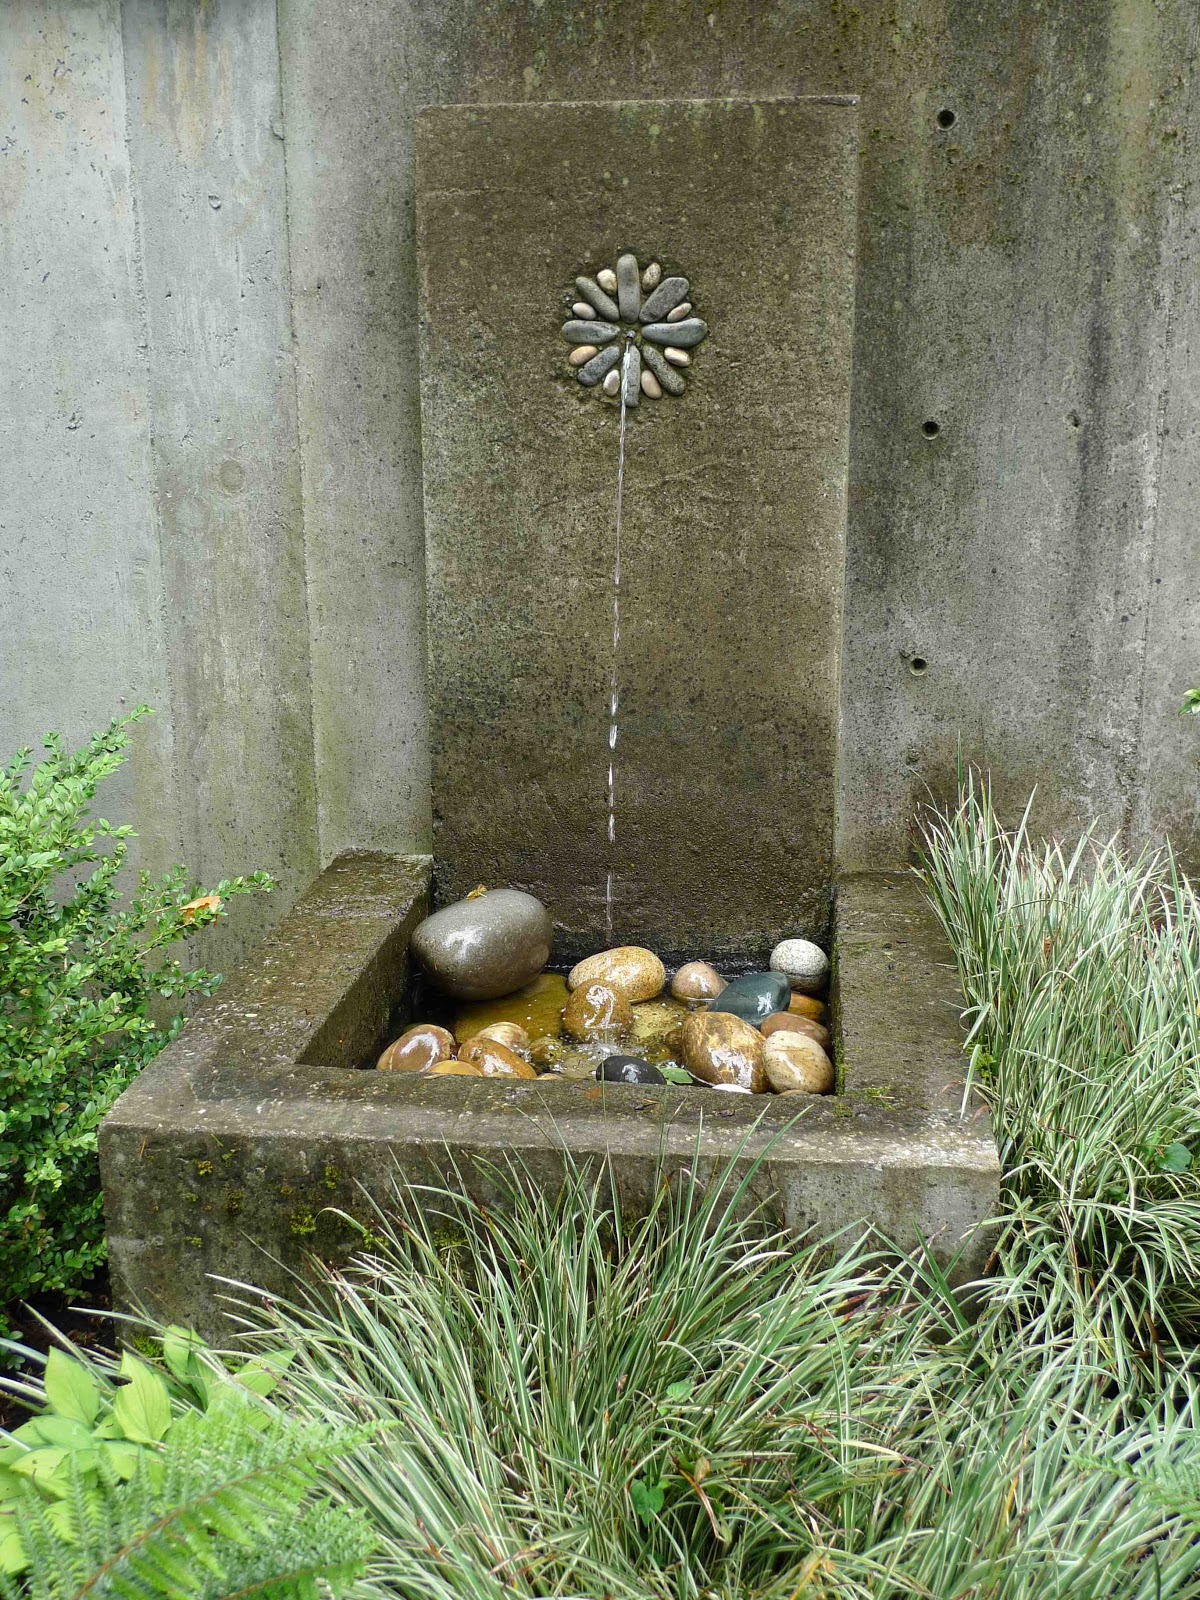 A Simple Cast Concrete Wall Fountain In A Garden I Built In 2001